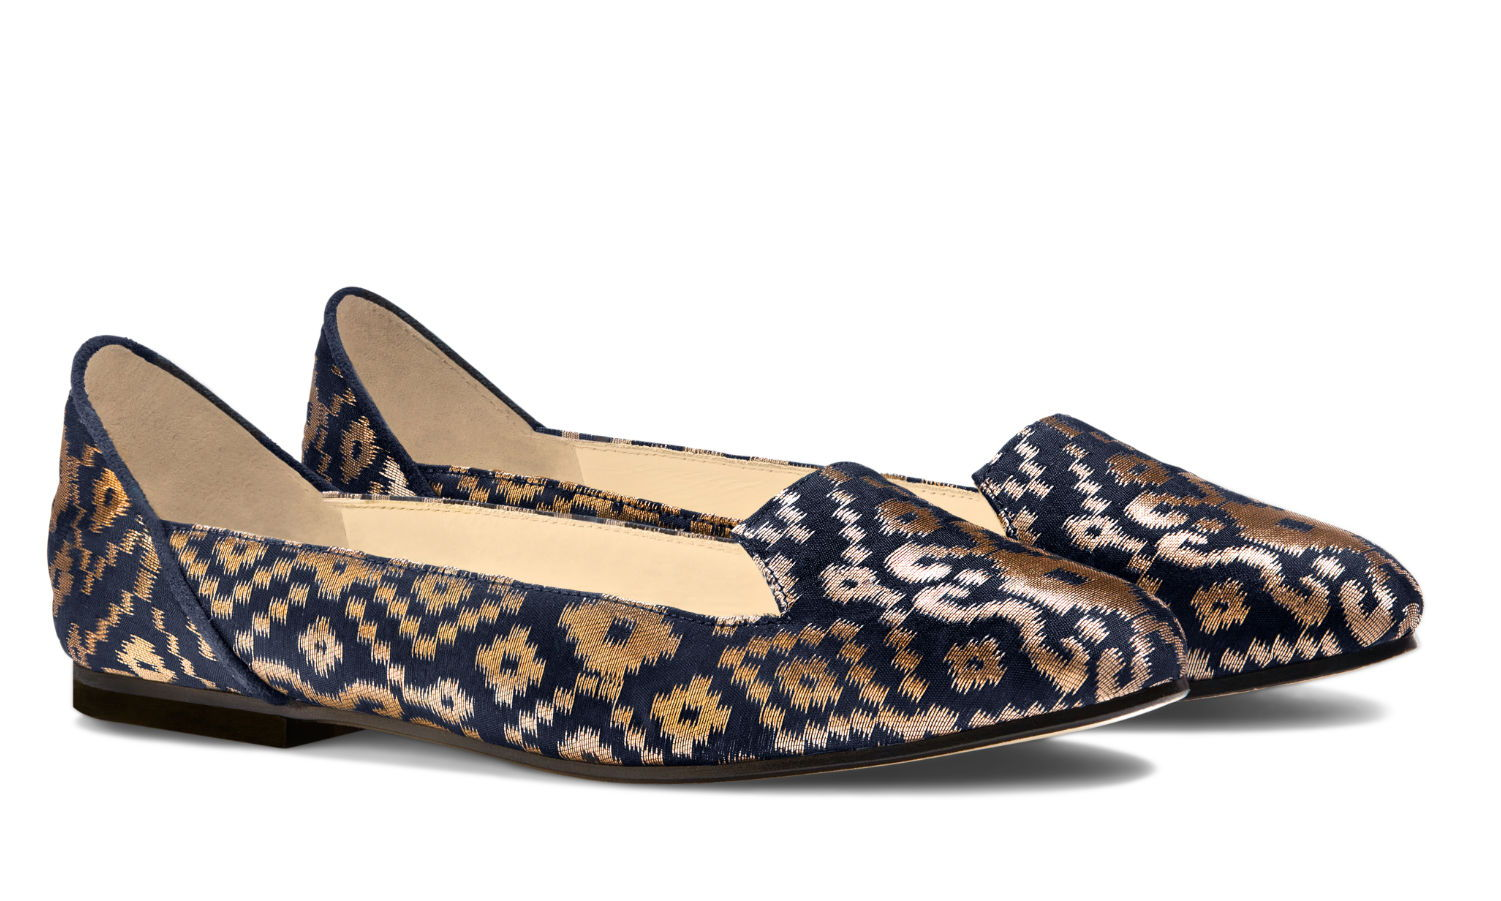 Bote A Mano Ballet Flats Shoes Uk Made in Itlay